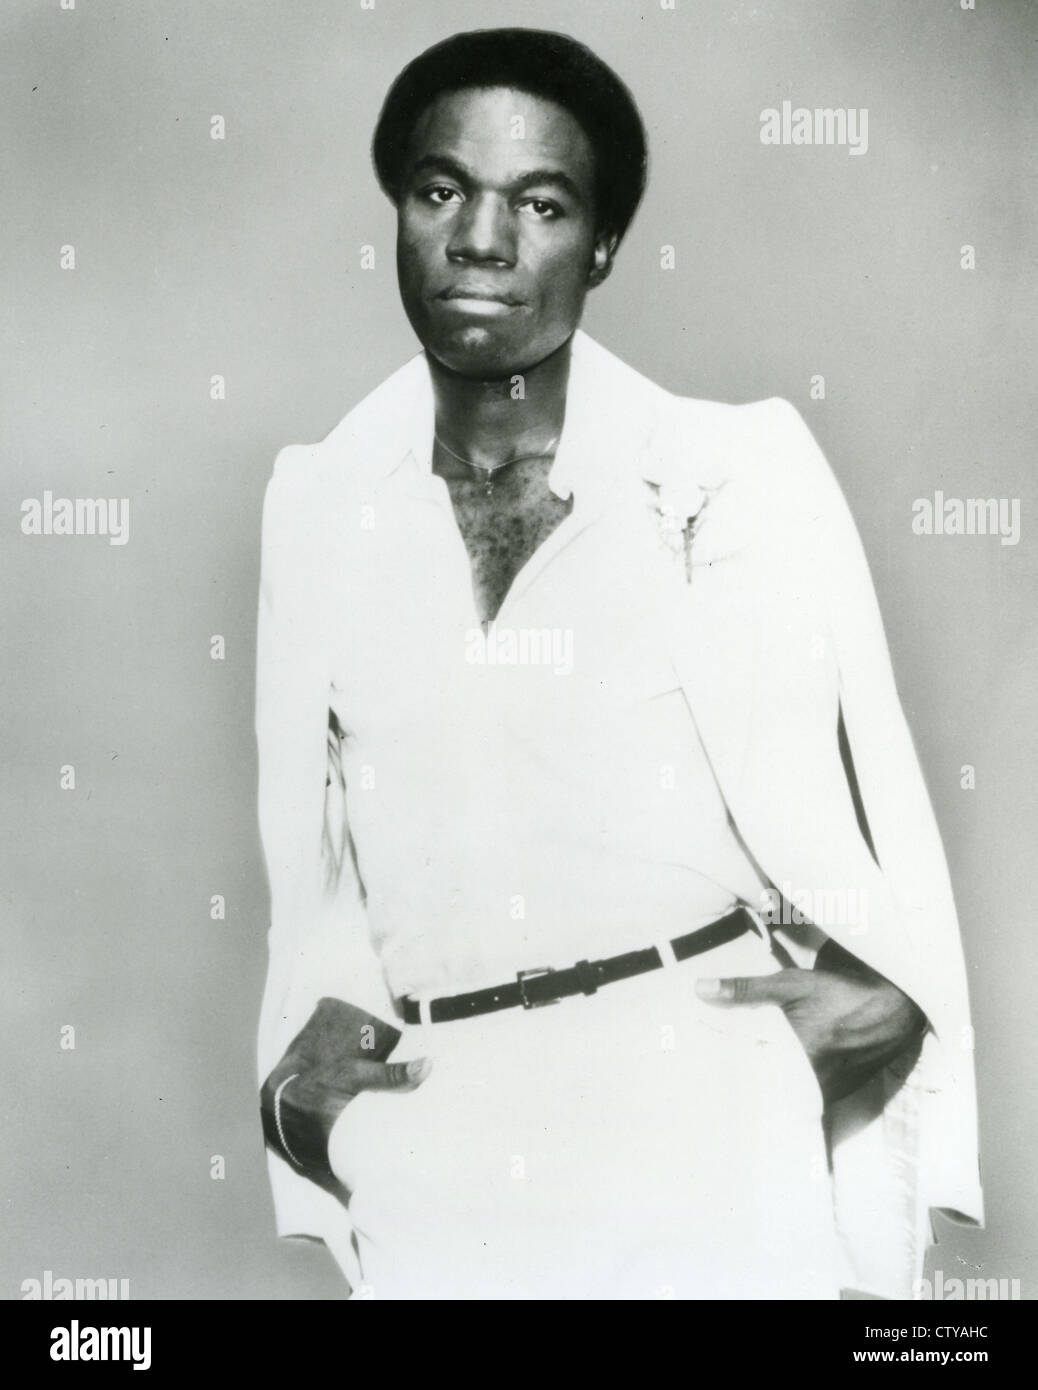 CECIL PARKER  Promotional photo of US singer about 1980 - Stock Image